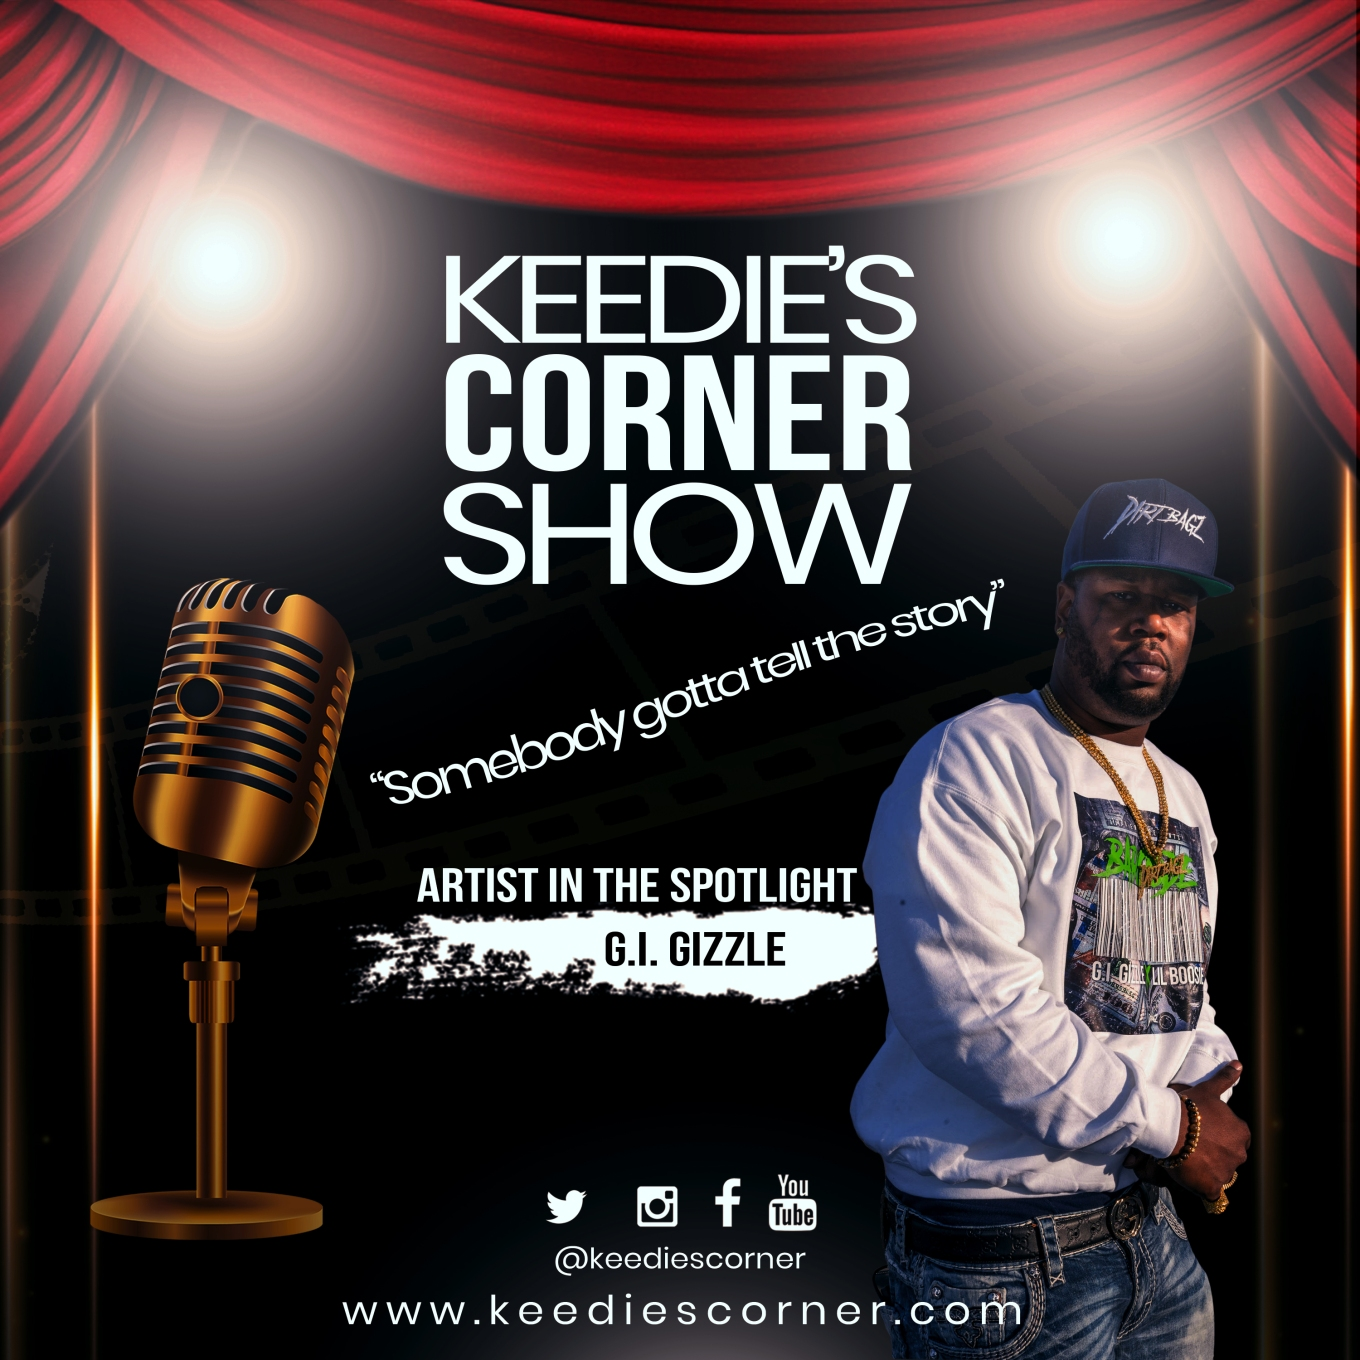 Keedies-corner-flyer-Artist